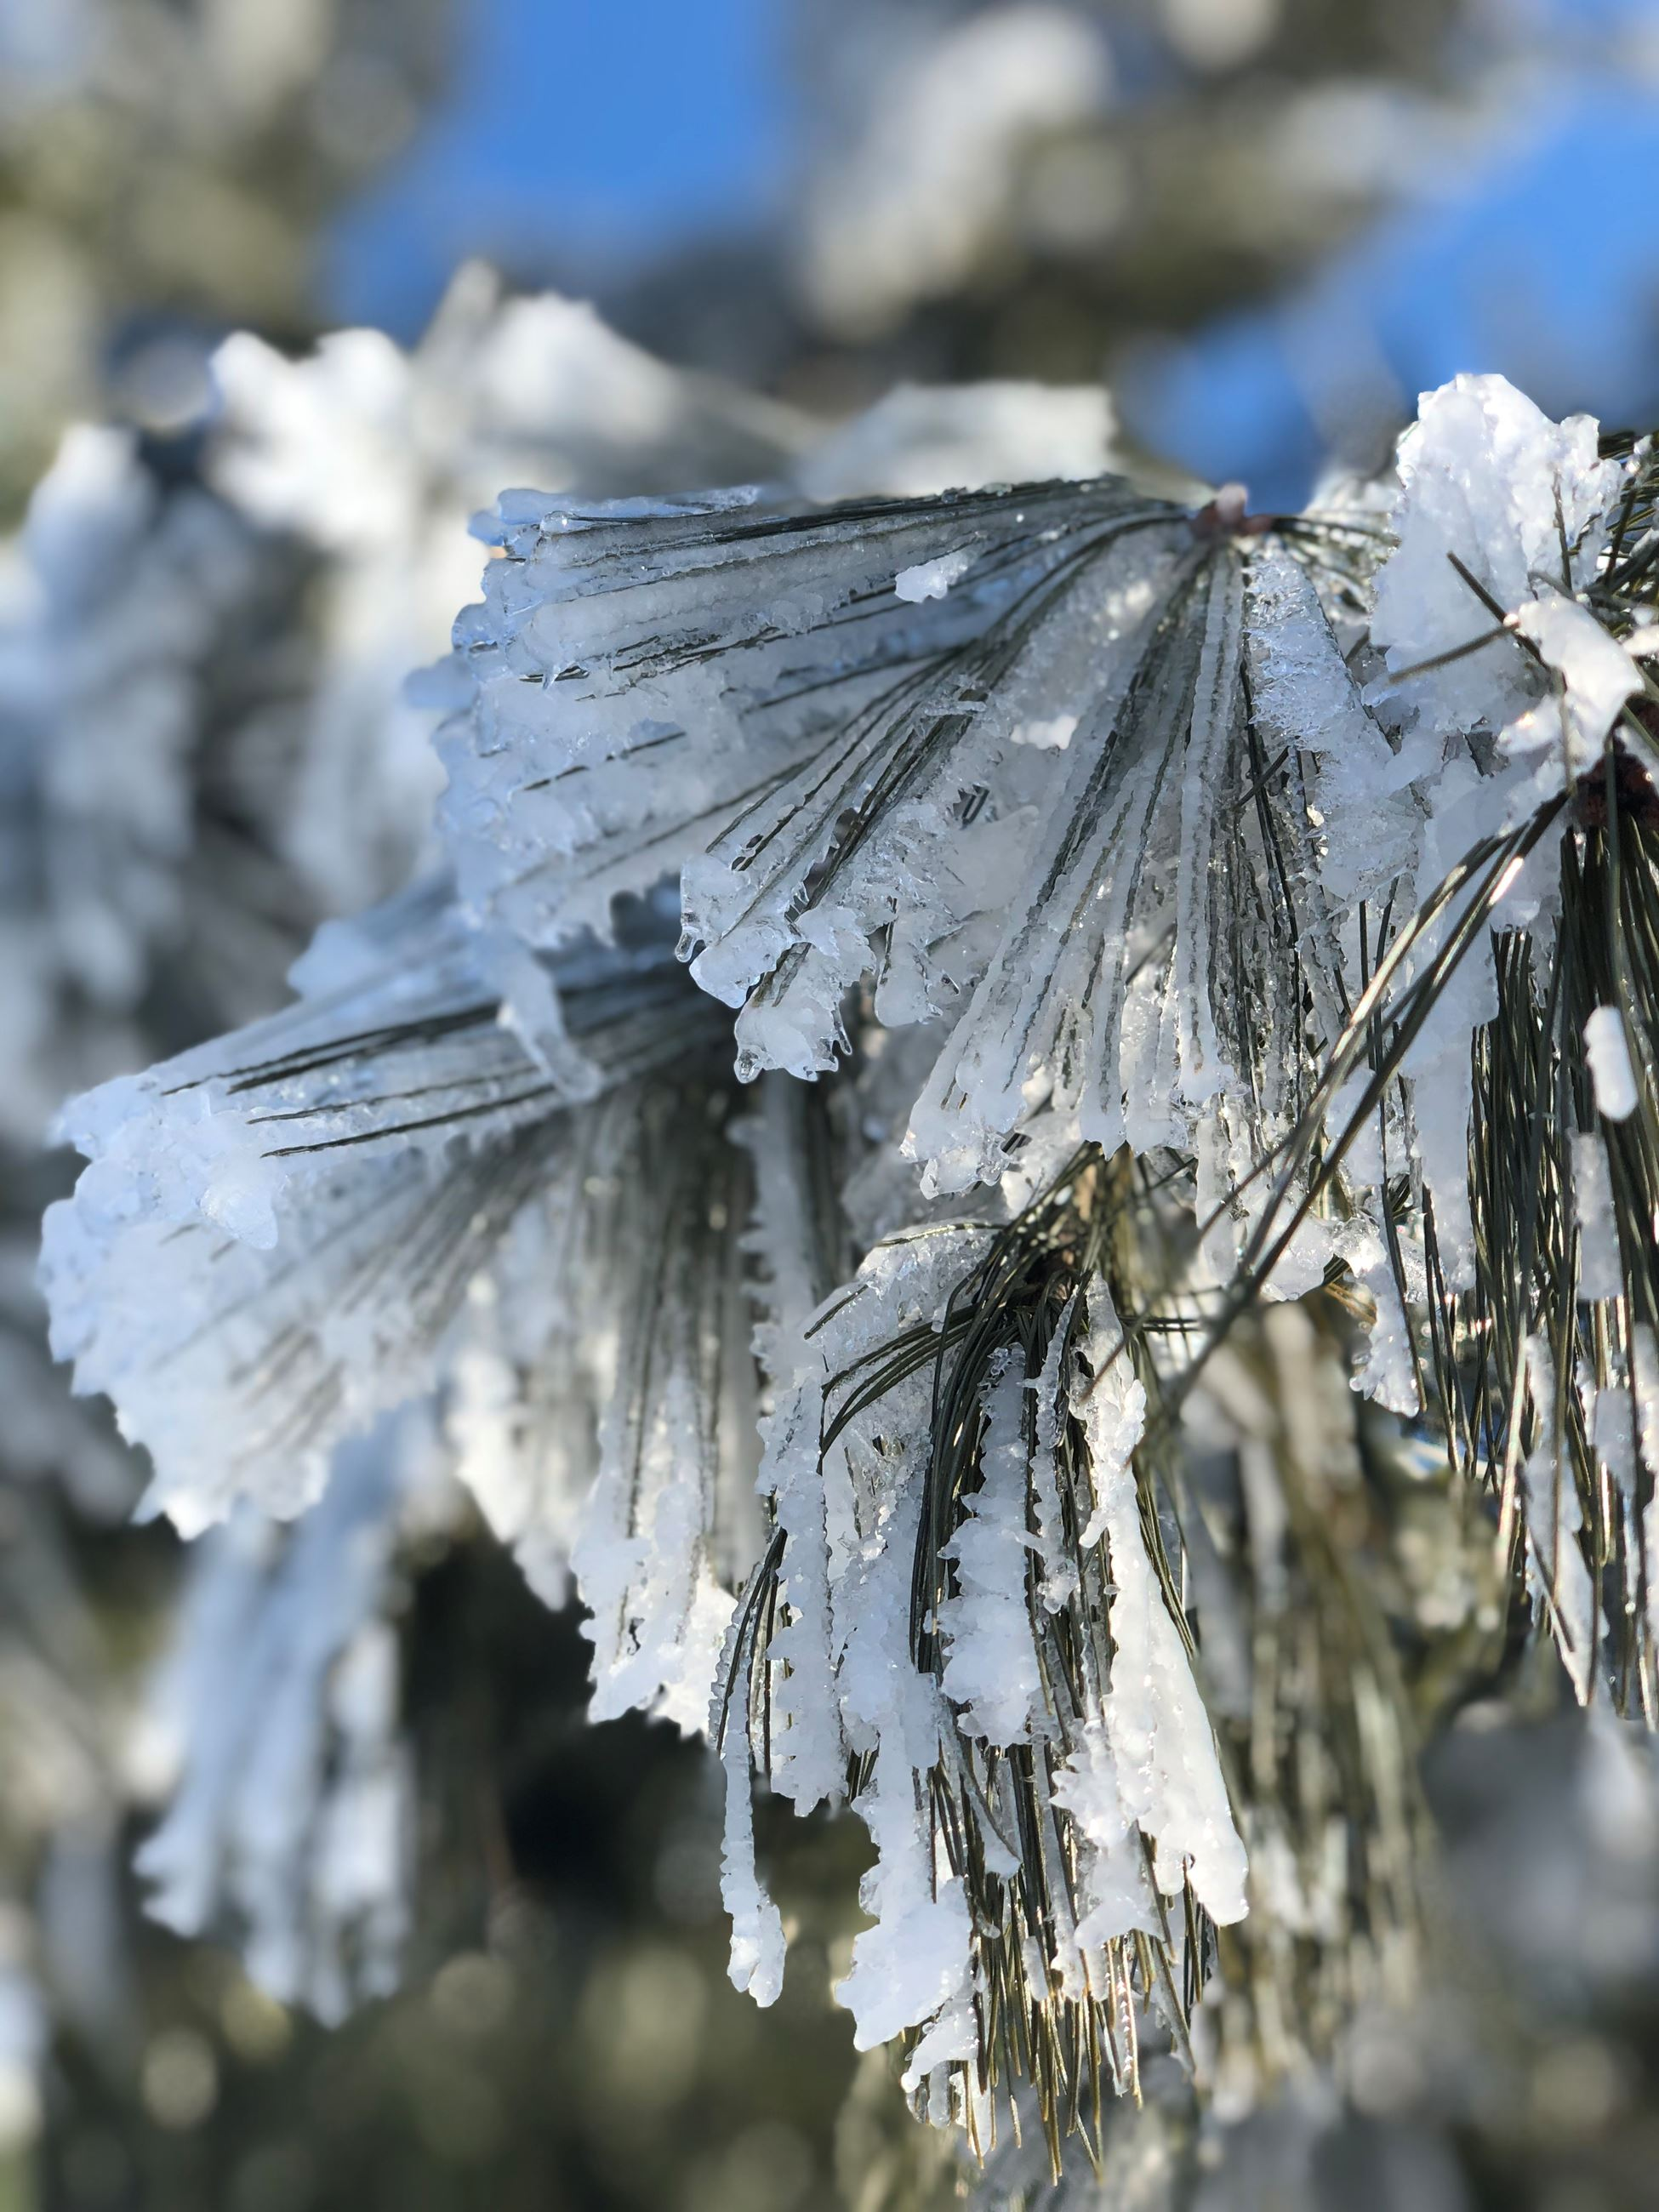 The needles of a pine tree crusted with ice.